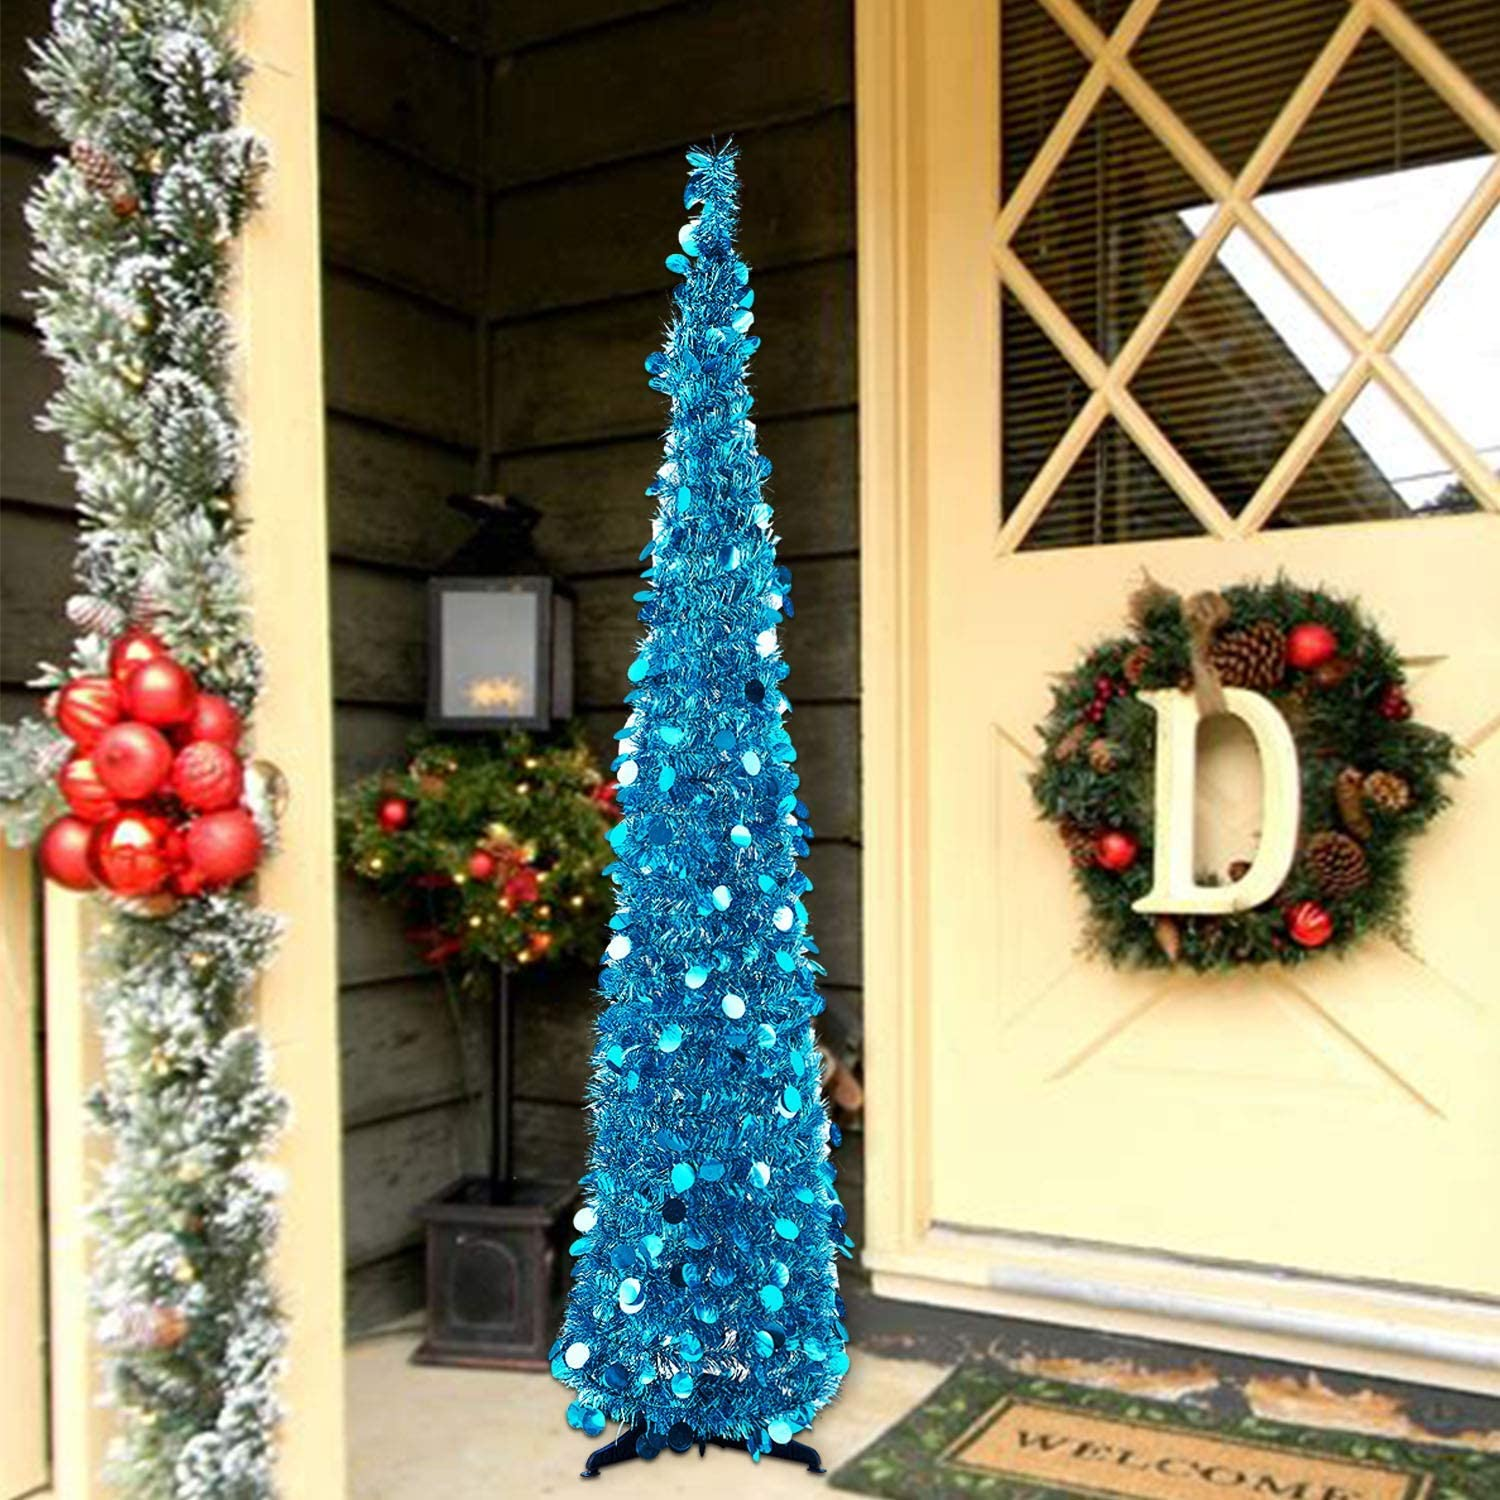 MACTING 6ft Pop up Christmas Tinsel Tree with Stand Easy-Assembly Tinsel Coastal Glittery Christmas Tree for Holiday Xmas Decorations 6FT Blue